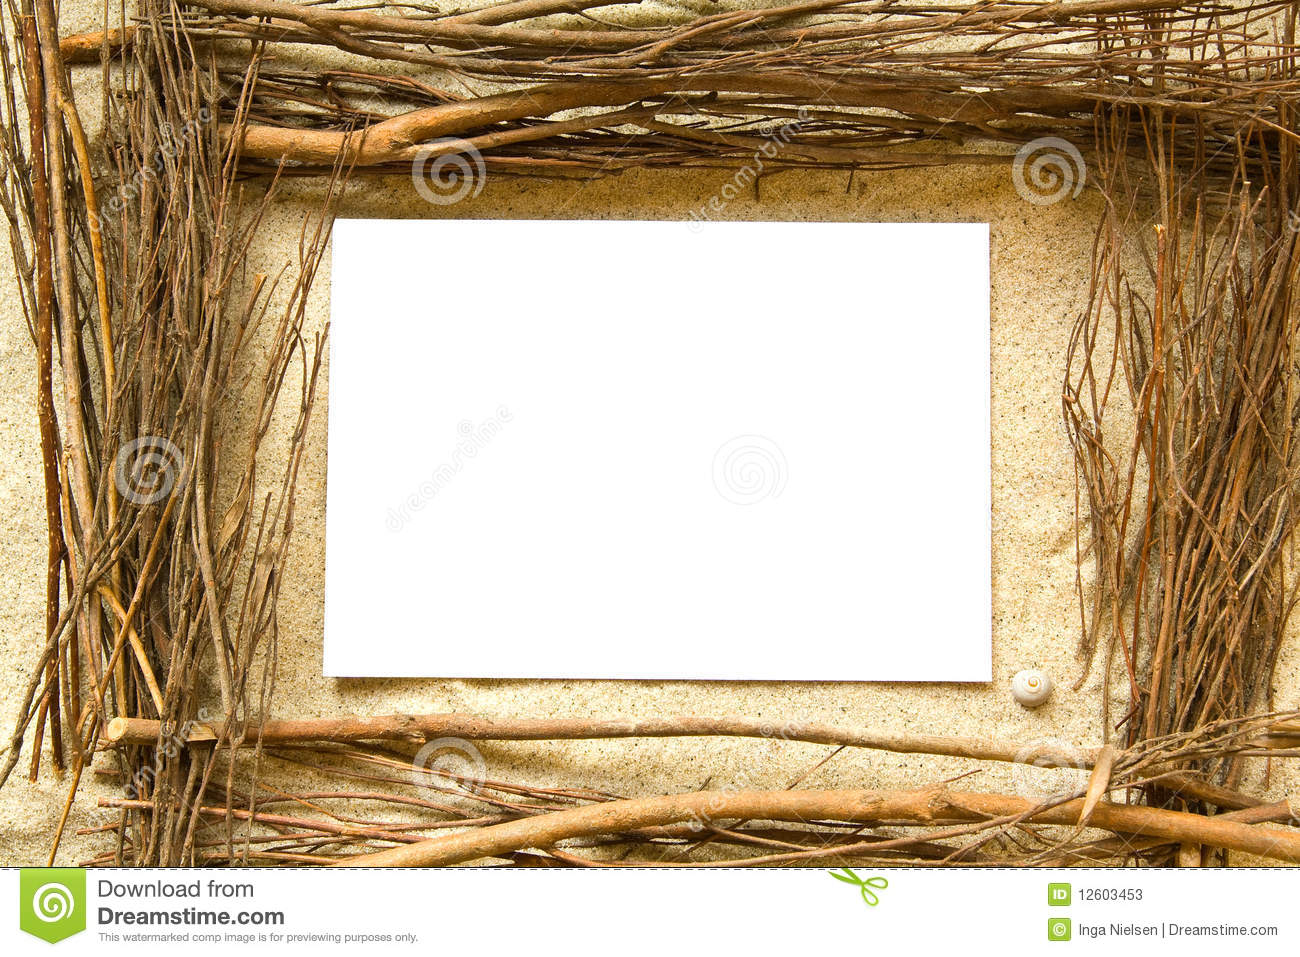 sand and twigs frame